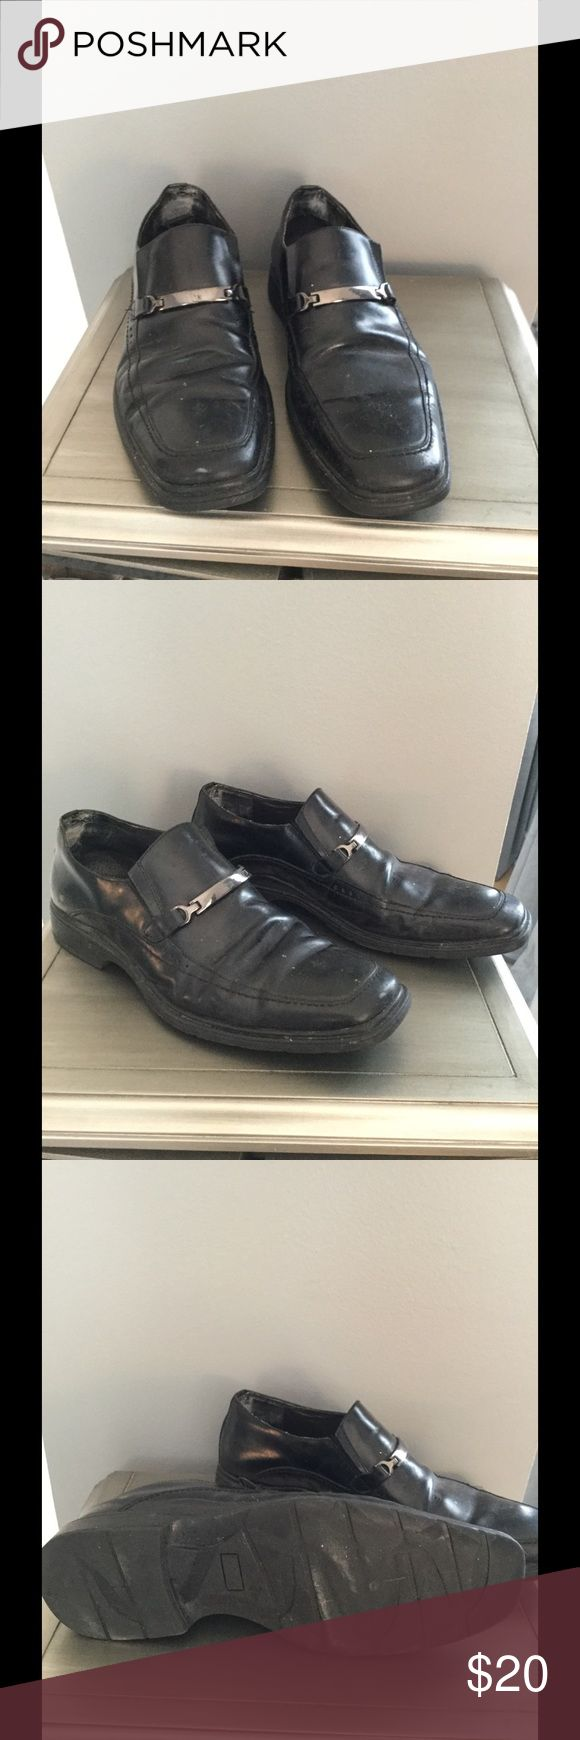 Via Spiga Black Leather Dress Loafers Black Leather Loafers w/ silver accents. Good condition, just needs a good polish. Via Spiga Shoes Loafers & Slip-Ons